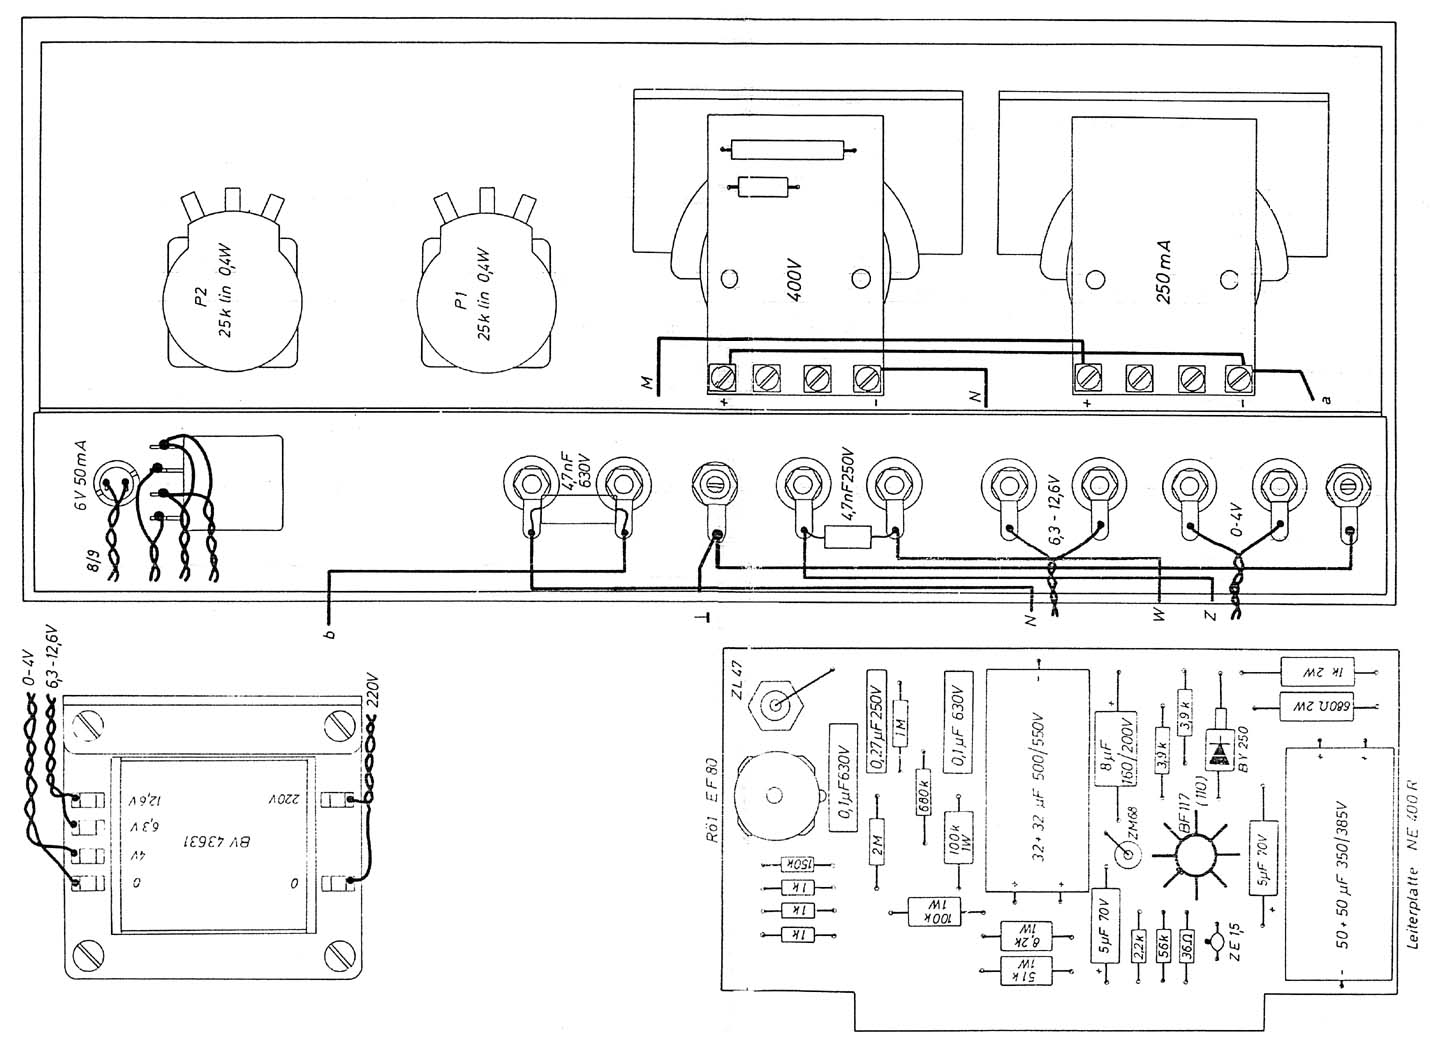 Ne Plan C on 1965 tvr wiring diagram